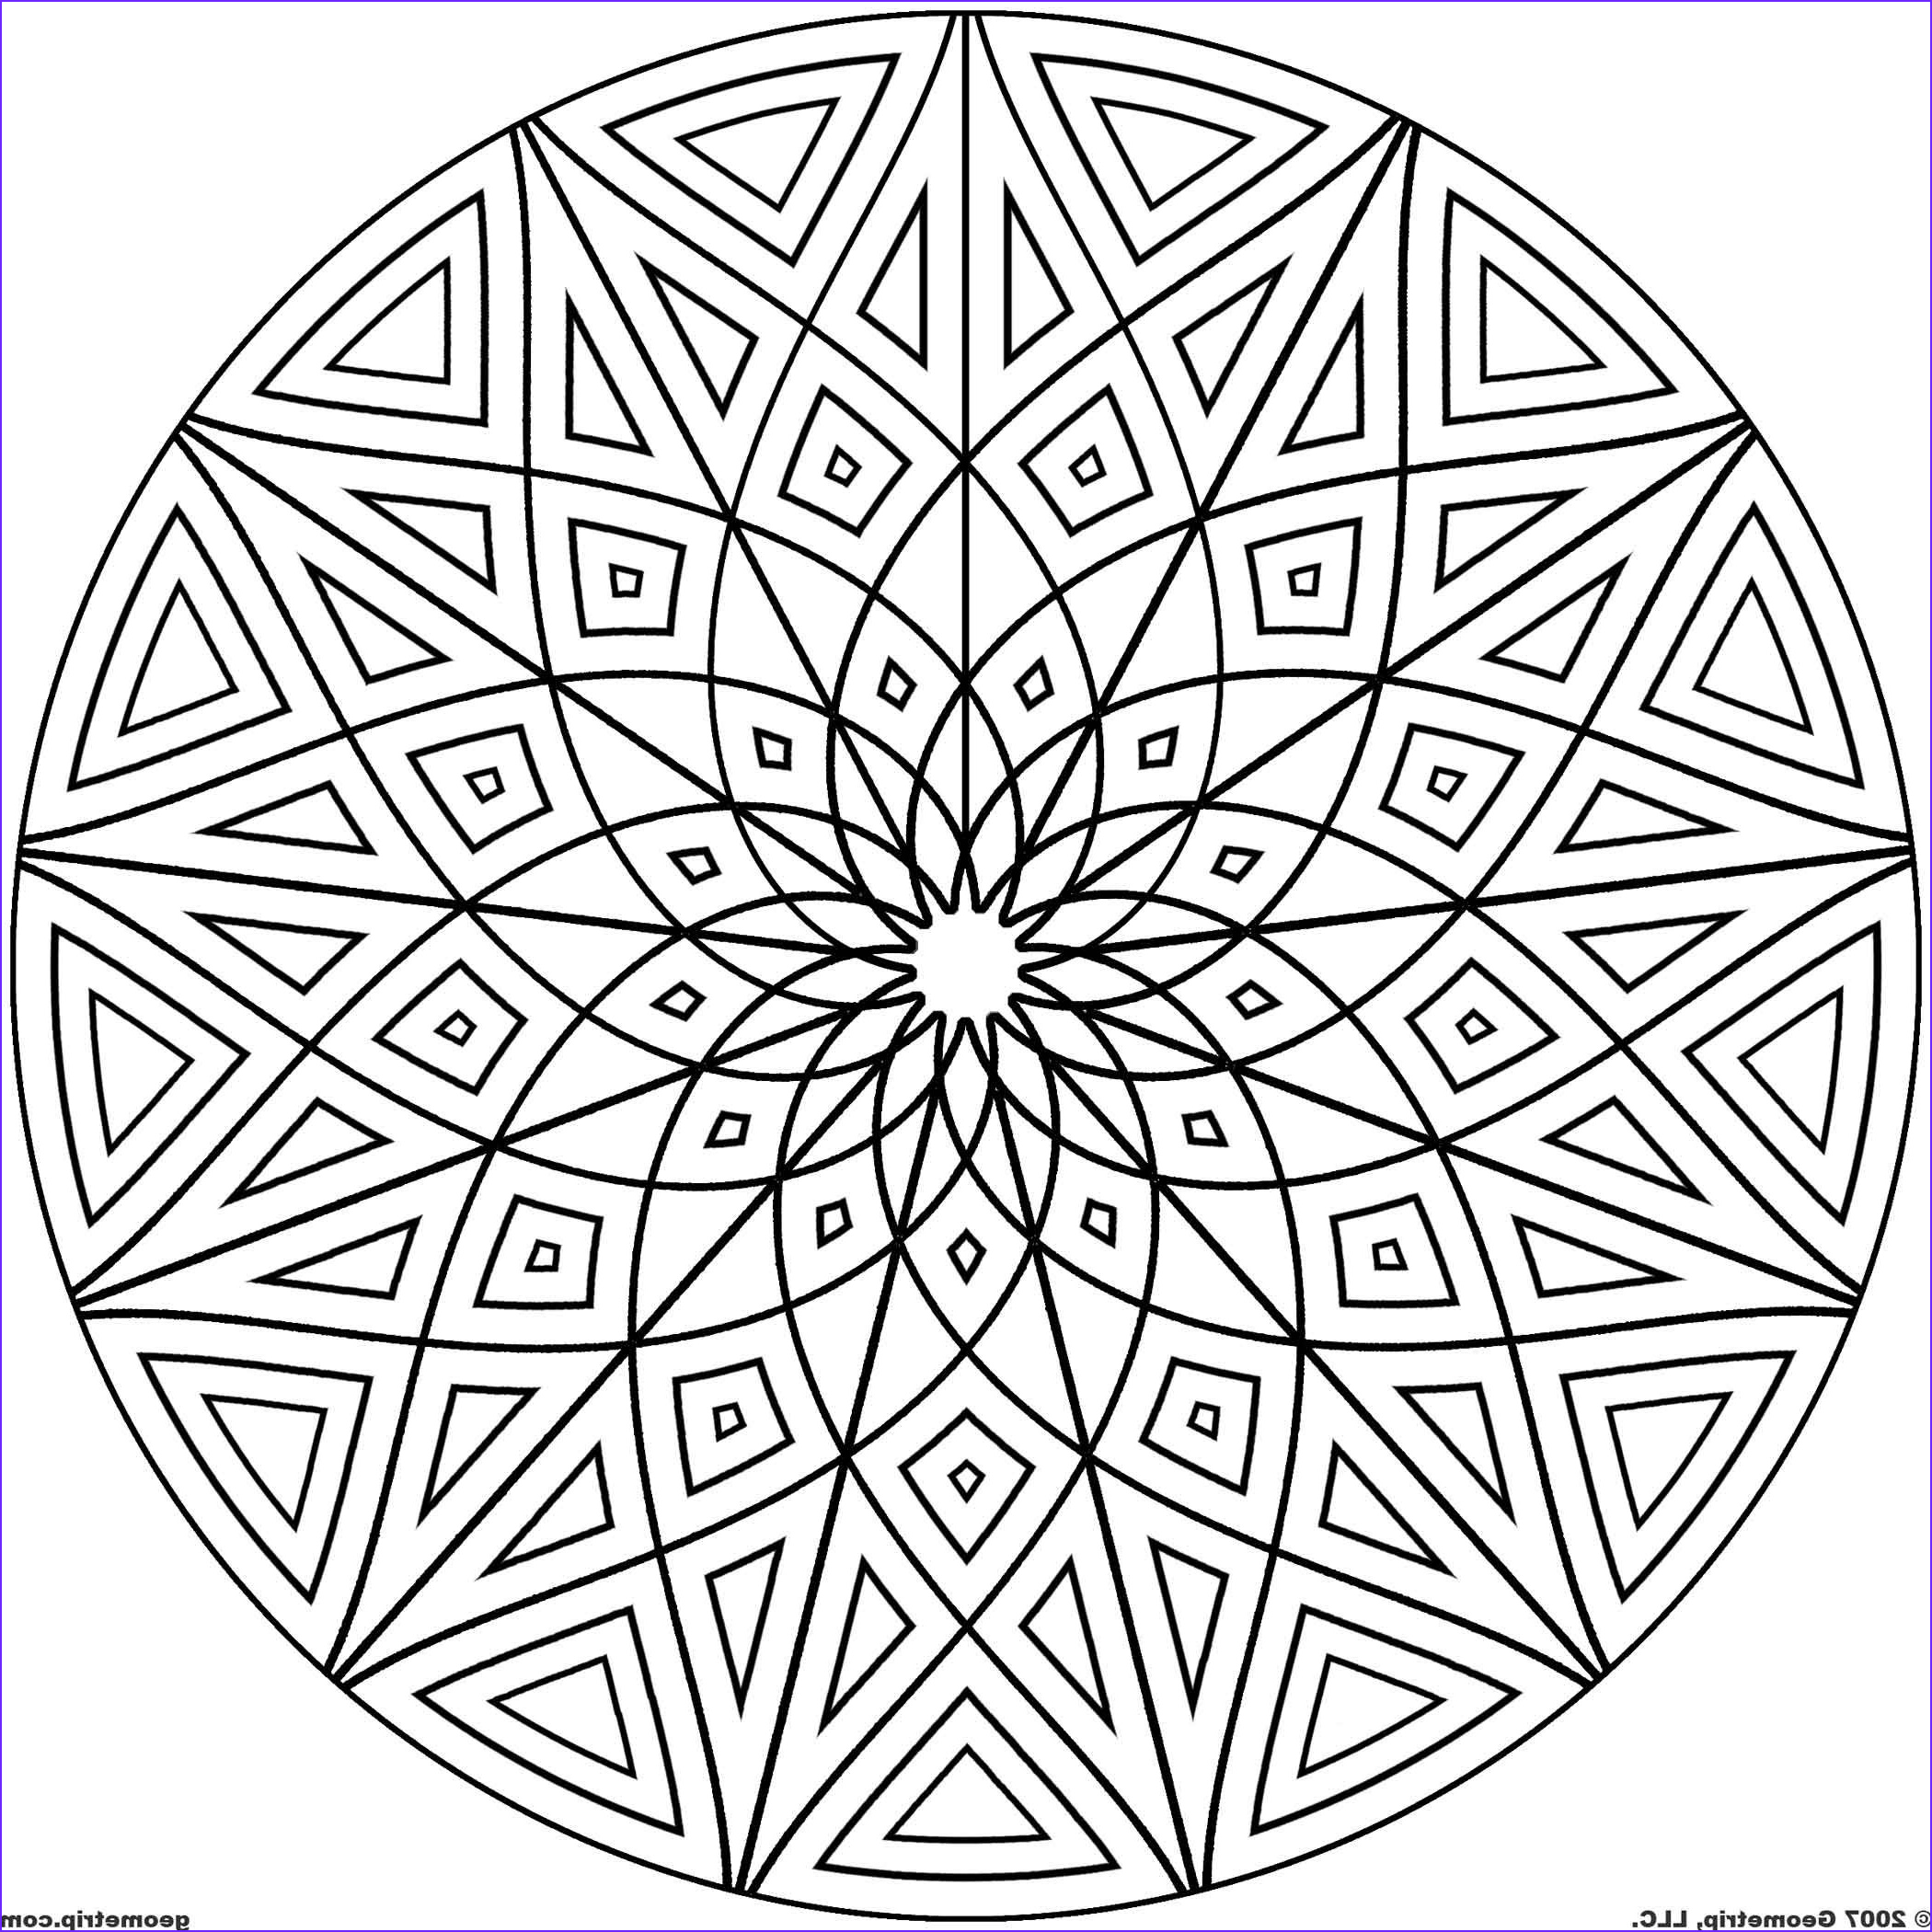 Cool Printable Coloring Pages for Adults Elegant Gallery Cool Geometric Designs Coloring Page for Free